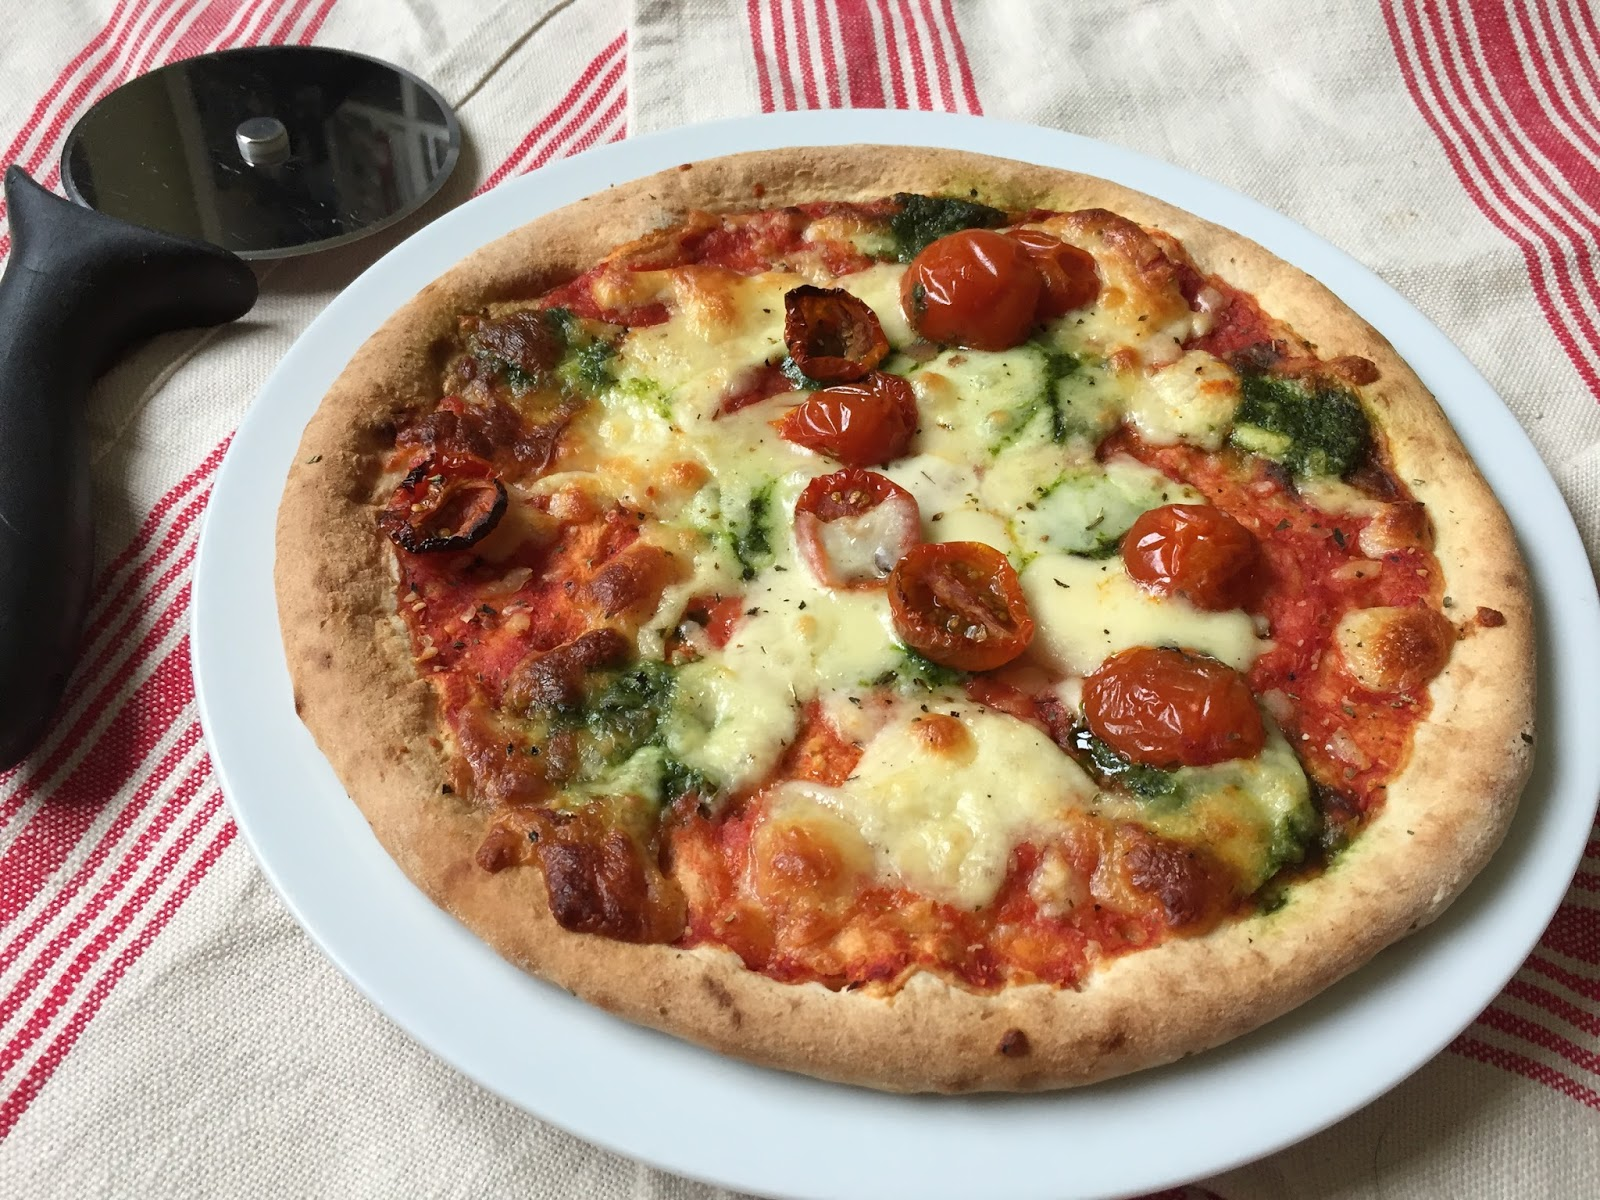 Hijacked By Twins Pizza Express With Iceland And The Power